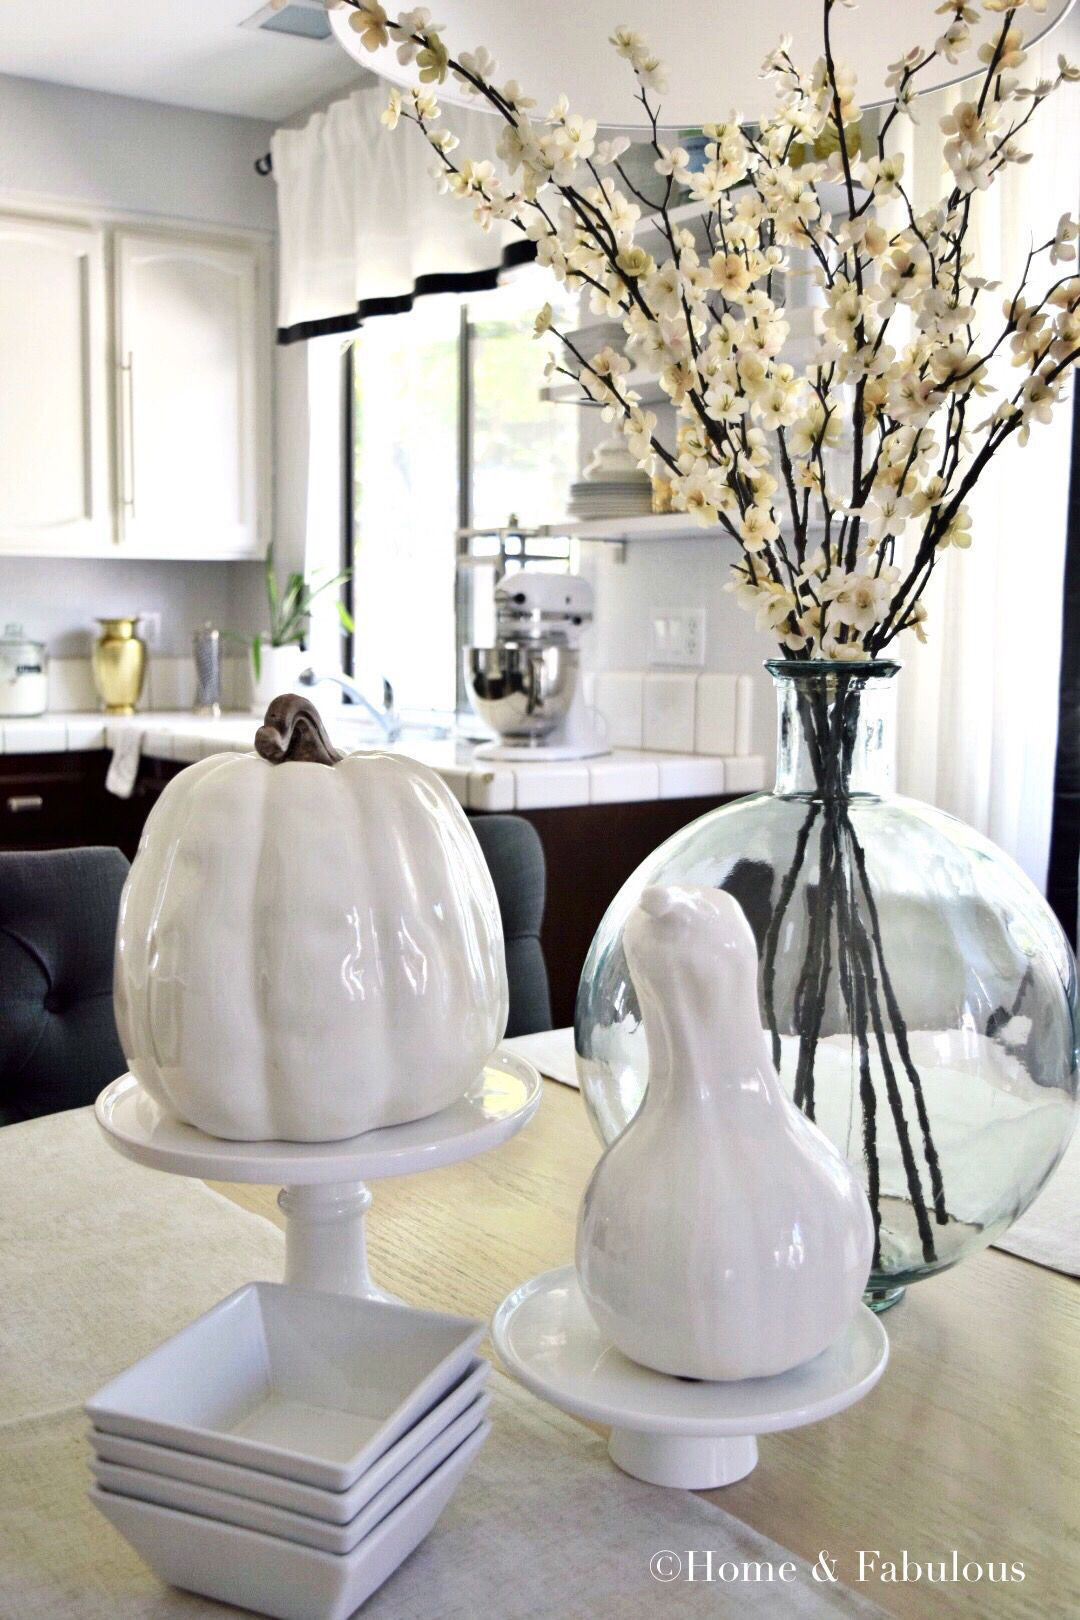 White Pumpkins And And A Vase From HomeGoods With Pretty Flowers - Decorative vases branches elegant room decorating ideas